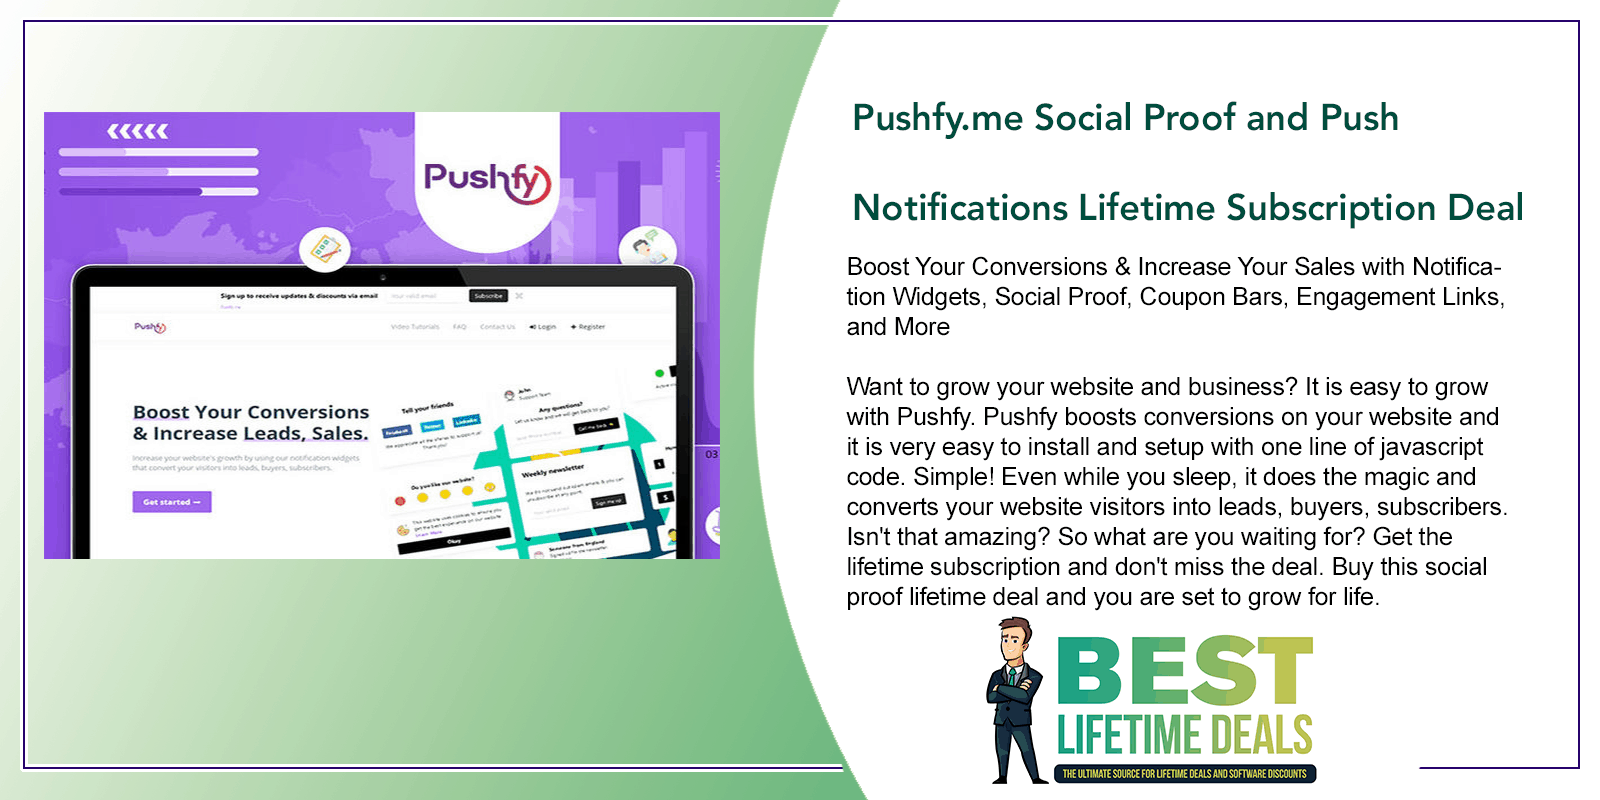 Pushfy.me Social Proof and Push Notifications Featured Image